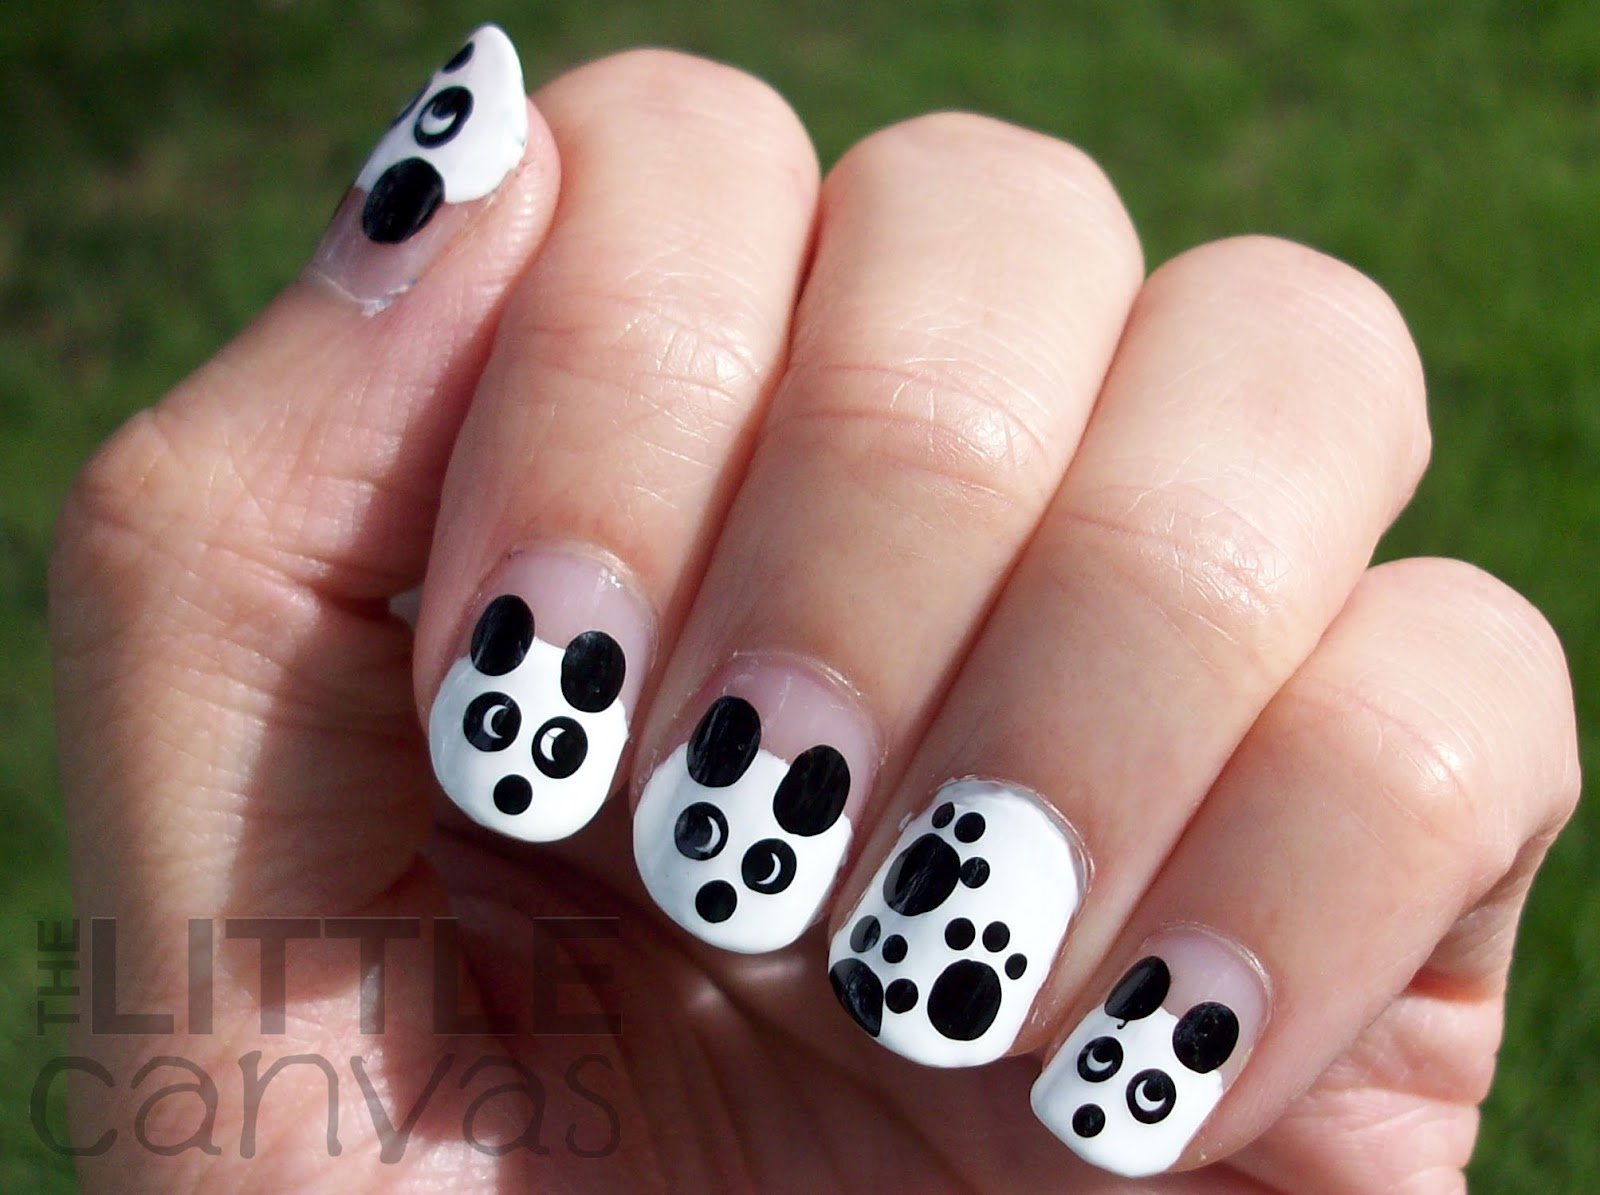 31 Day Challenge 8 Black And White Pandas